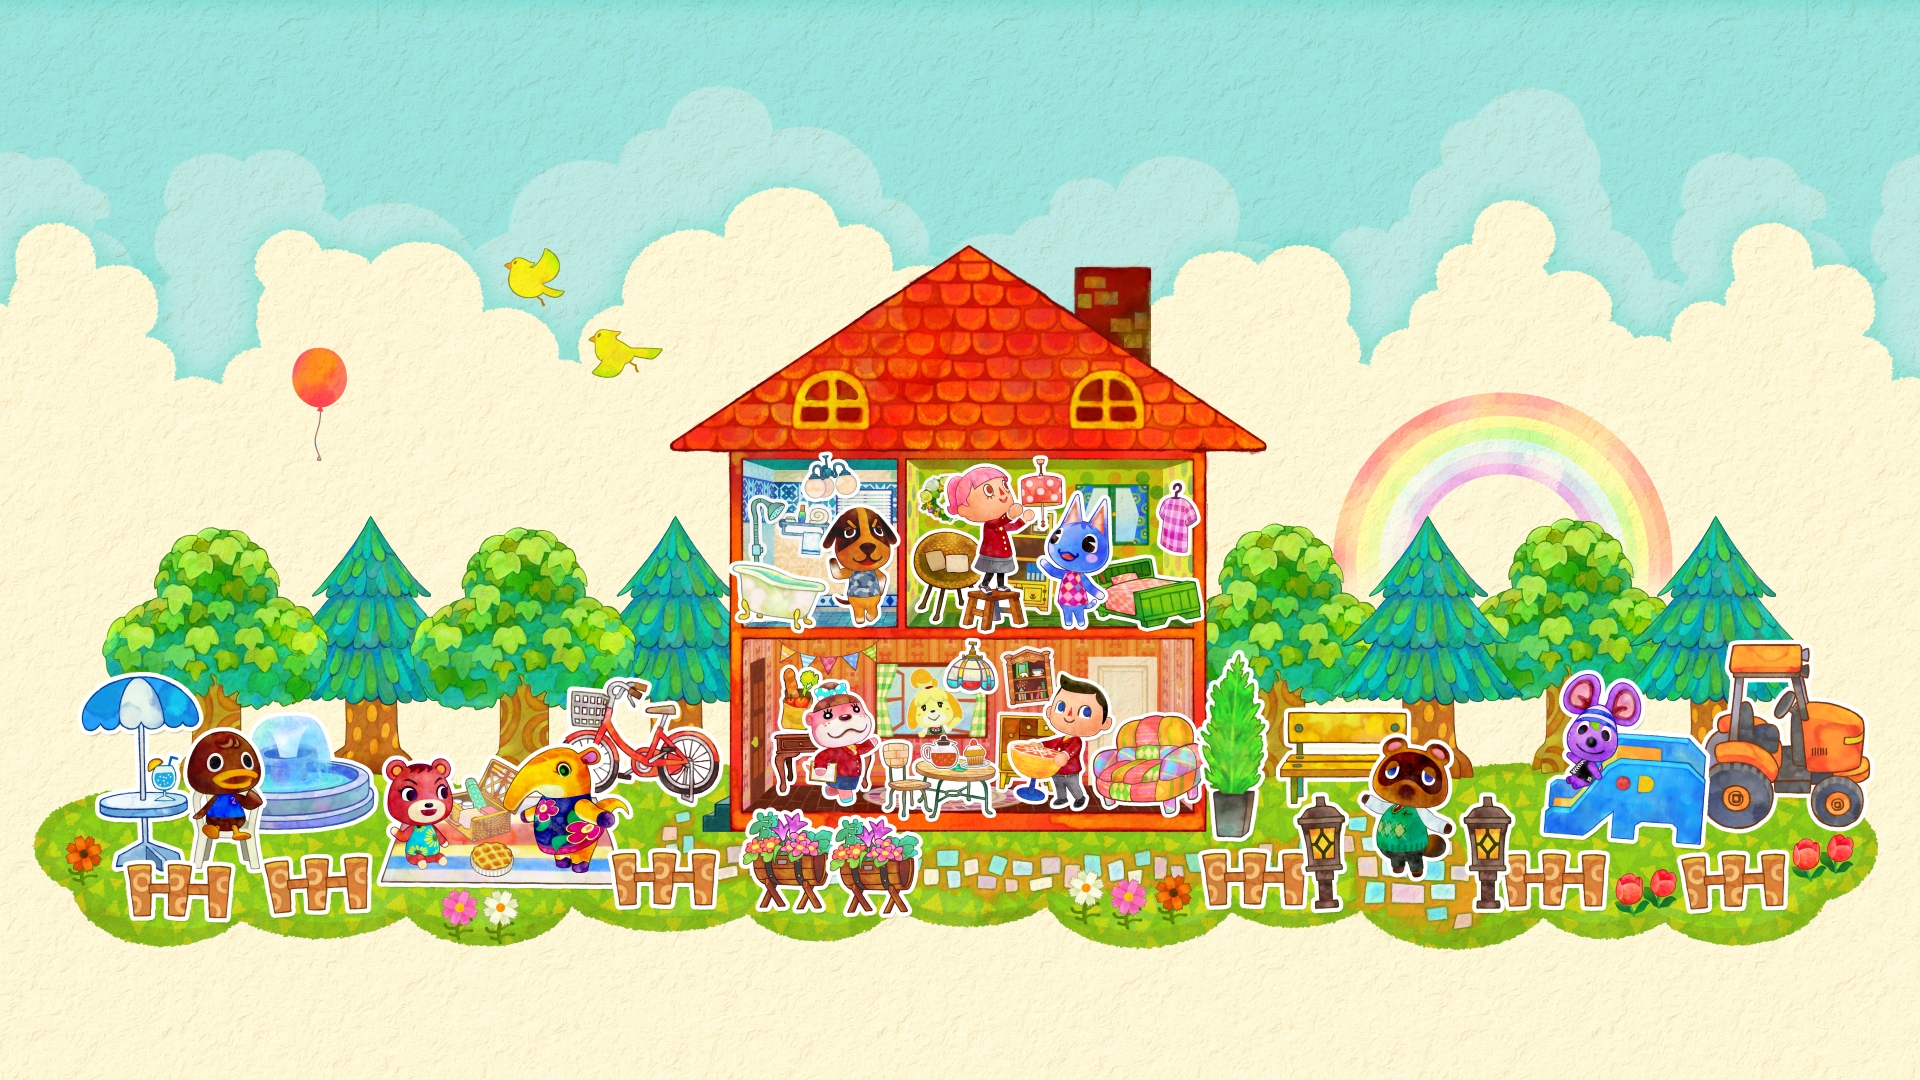 animal crossing images download | wallpaper.wiki